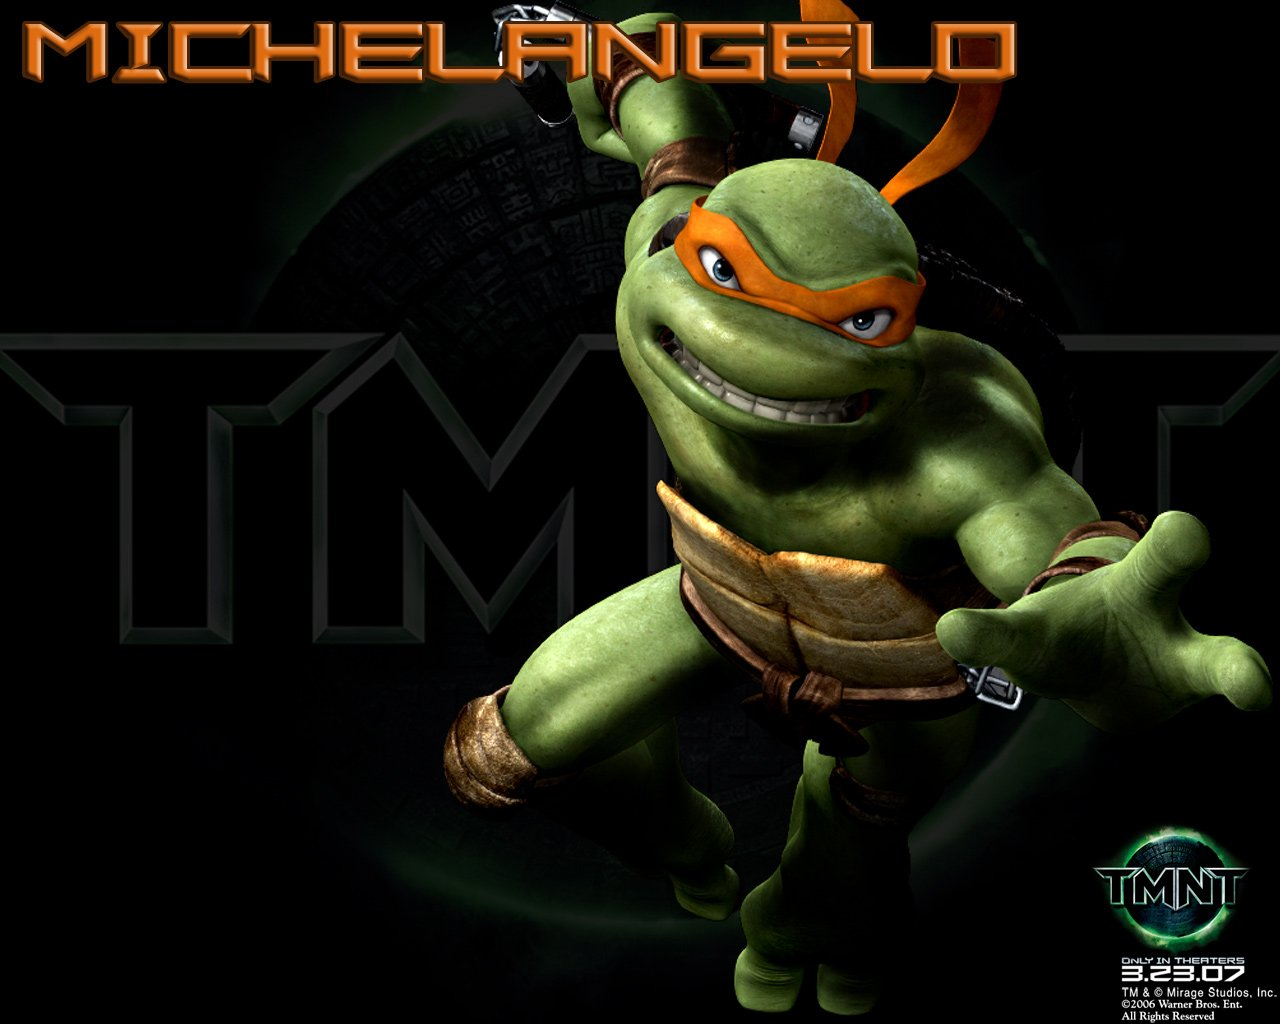 Free Download Tmnt Wallpaper 1280x1024 For Your Desktop